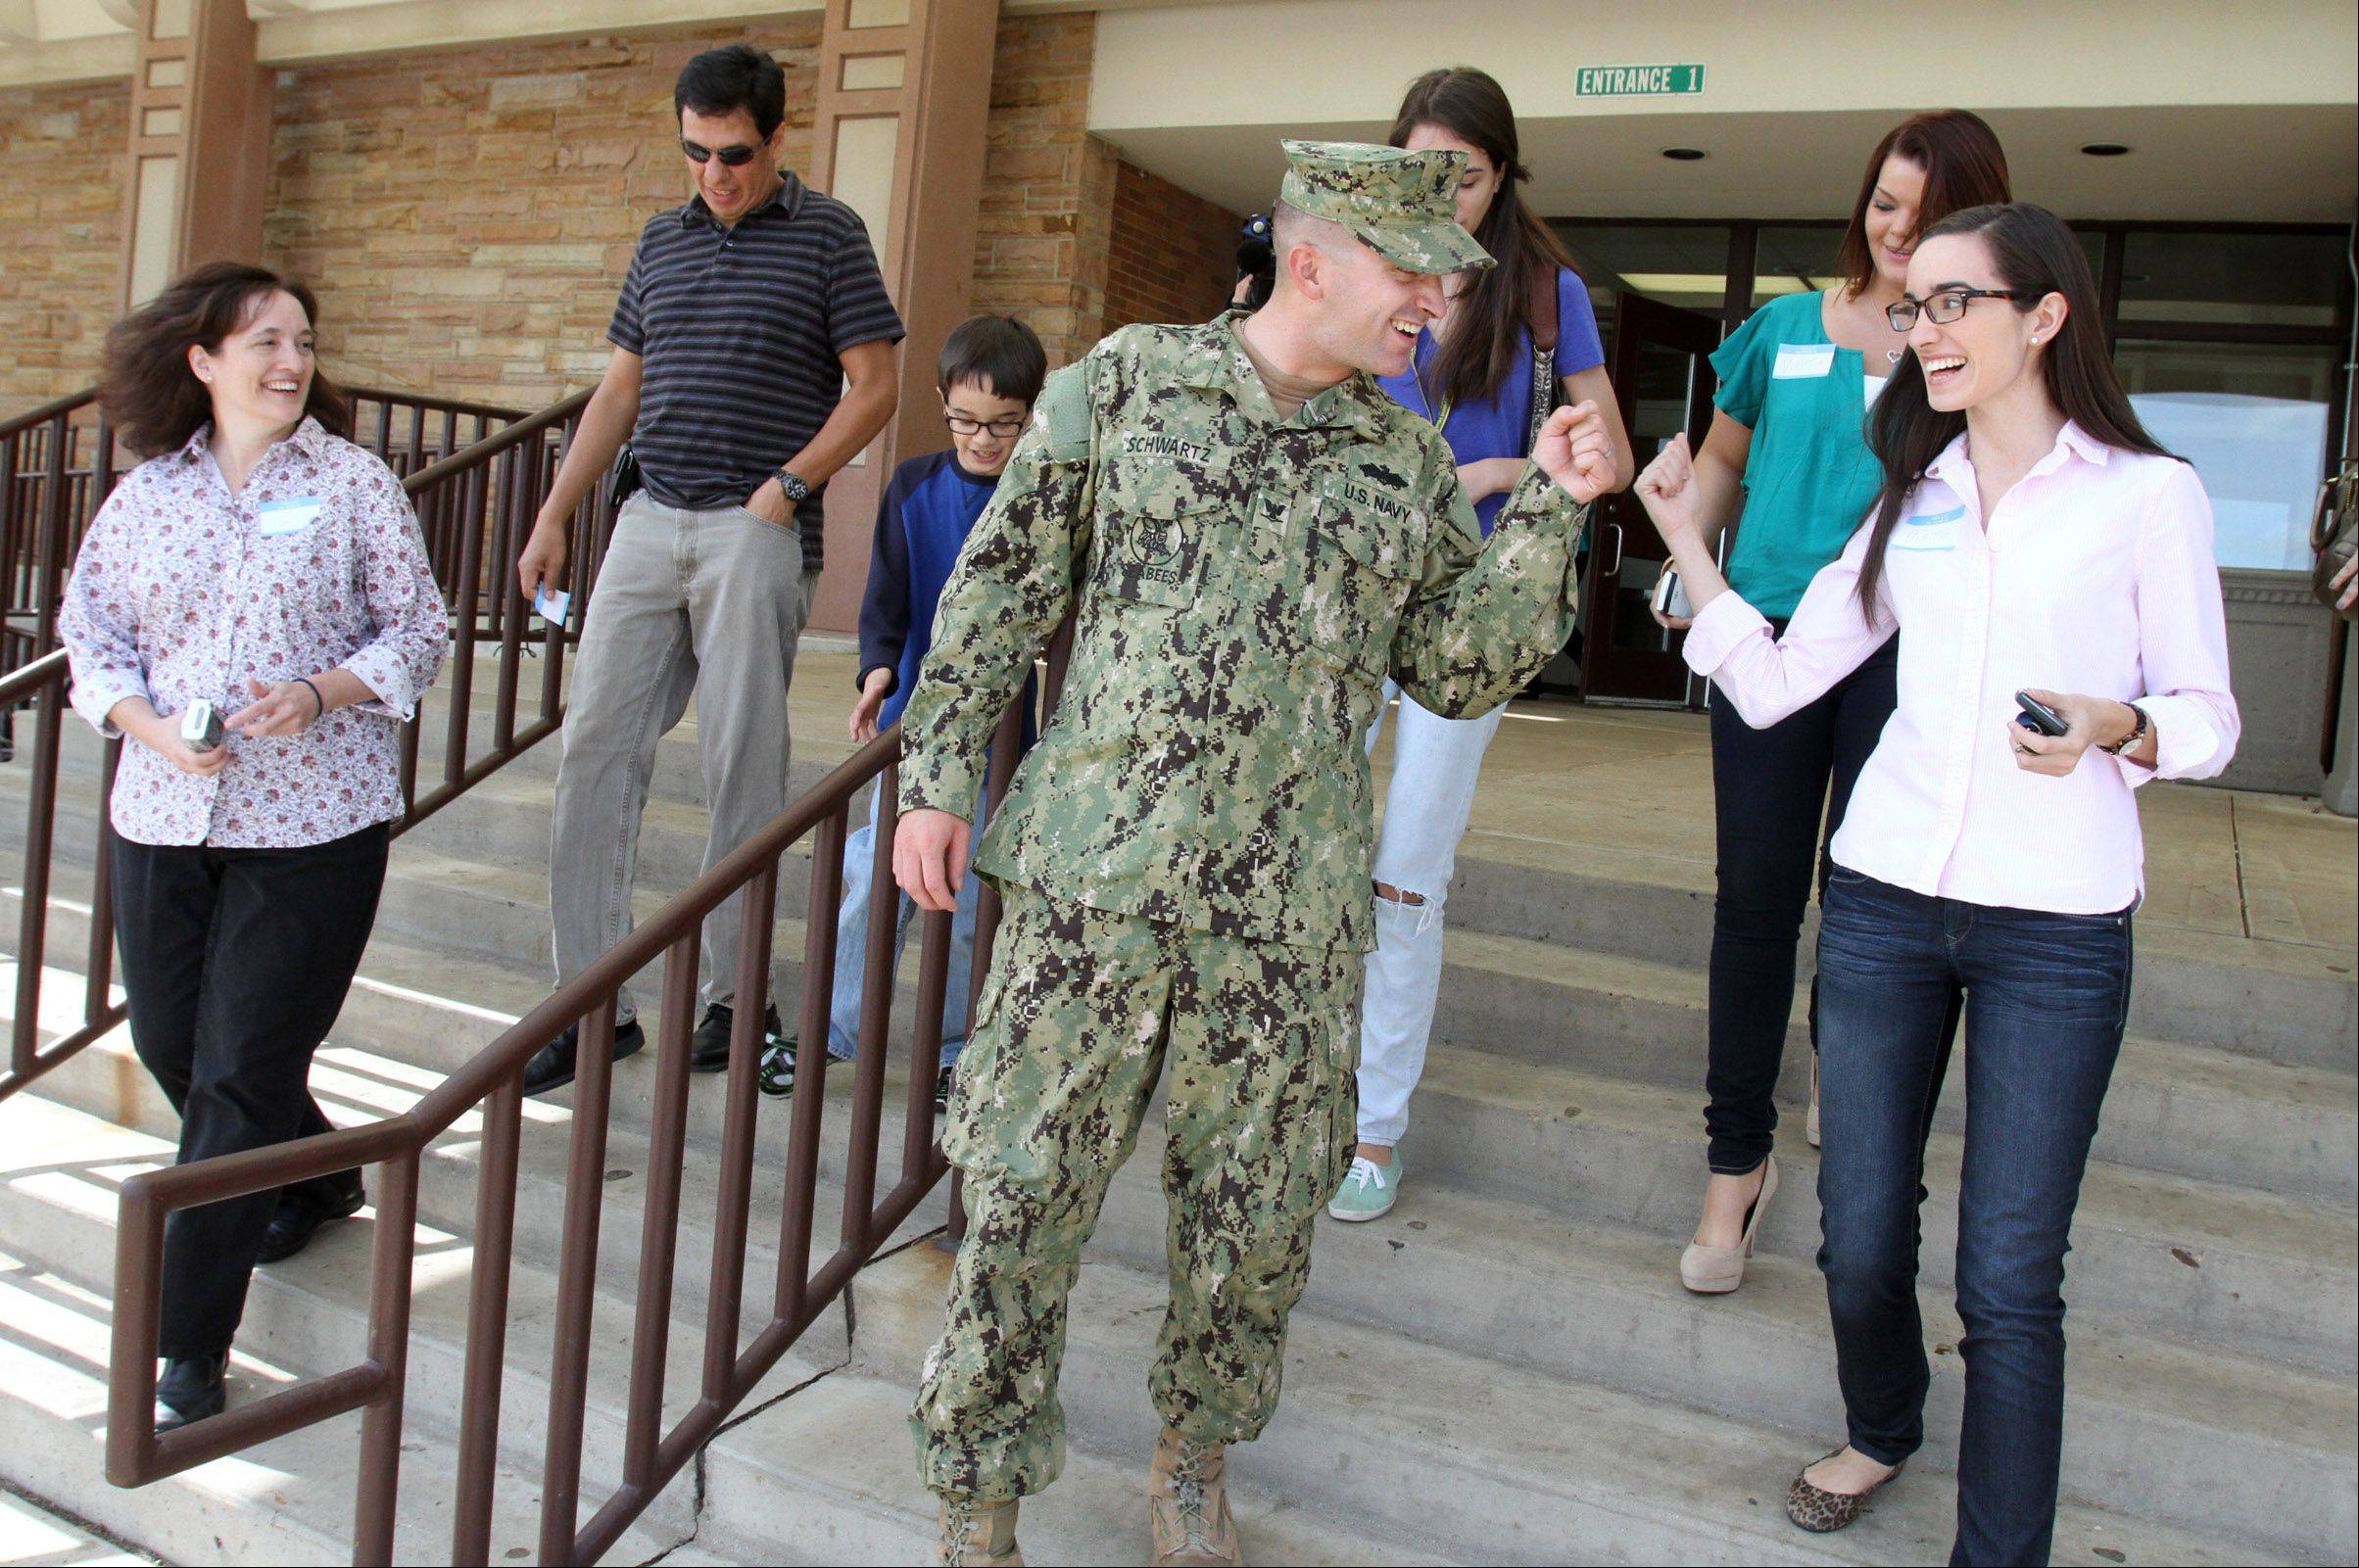 Petty Officer 3rd Class Cameron Schwartz of the U.S. Navy gets a fist bump from younger sister, Haley, as his family leaves Fremd High School in Palatine. Recently back from a deployment in Afghanistan, he visited Fremd and Hunting Ridge School on Wednesday to surprise his siblings.